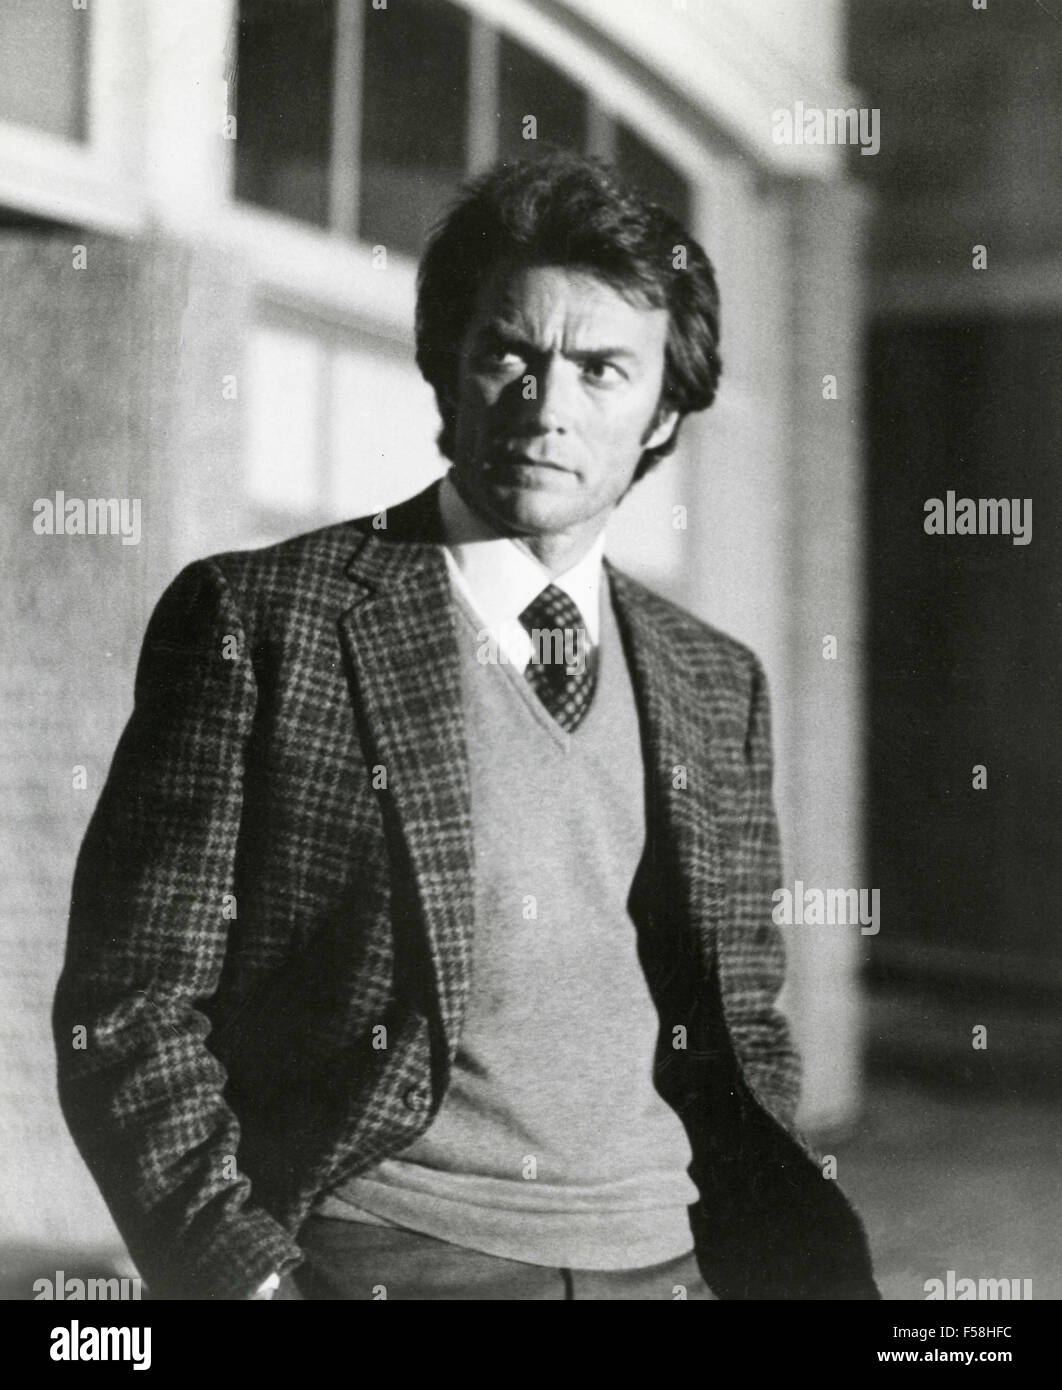 The actor Clint Eastwood in Dirty Harry - Stock Image